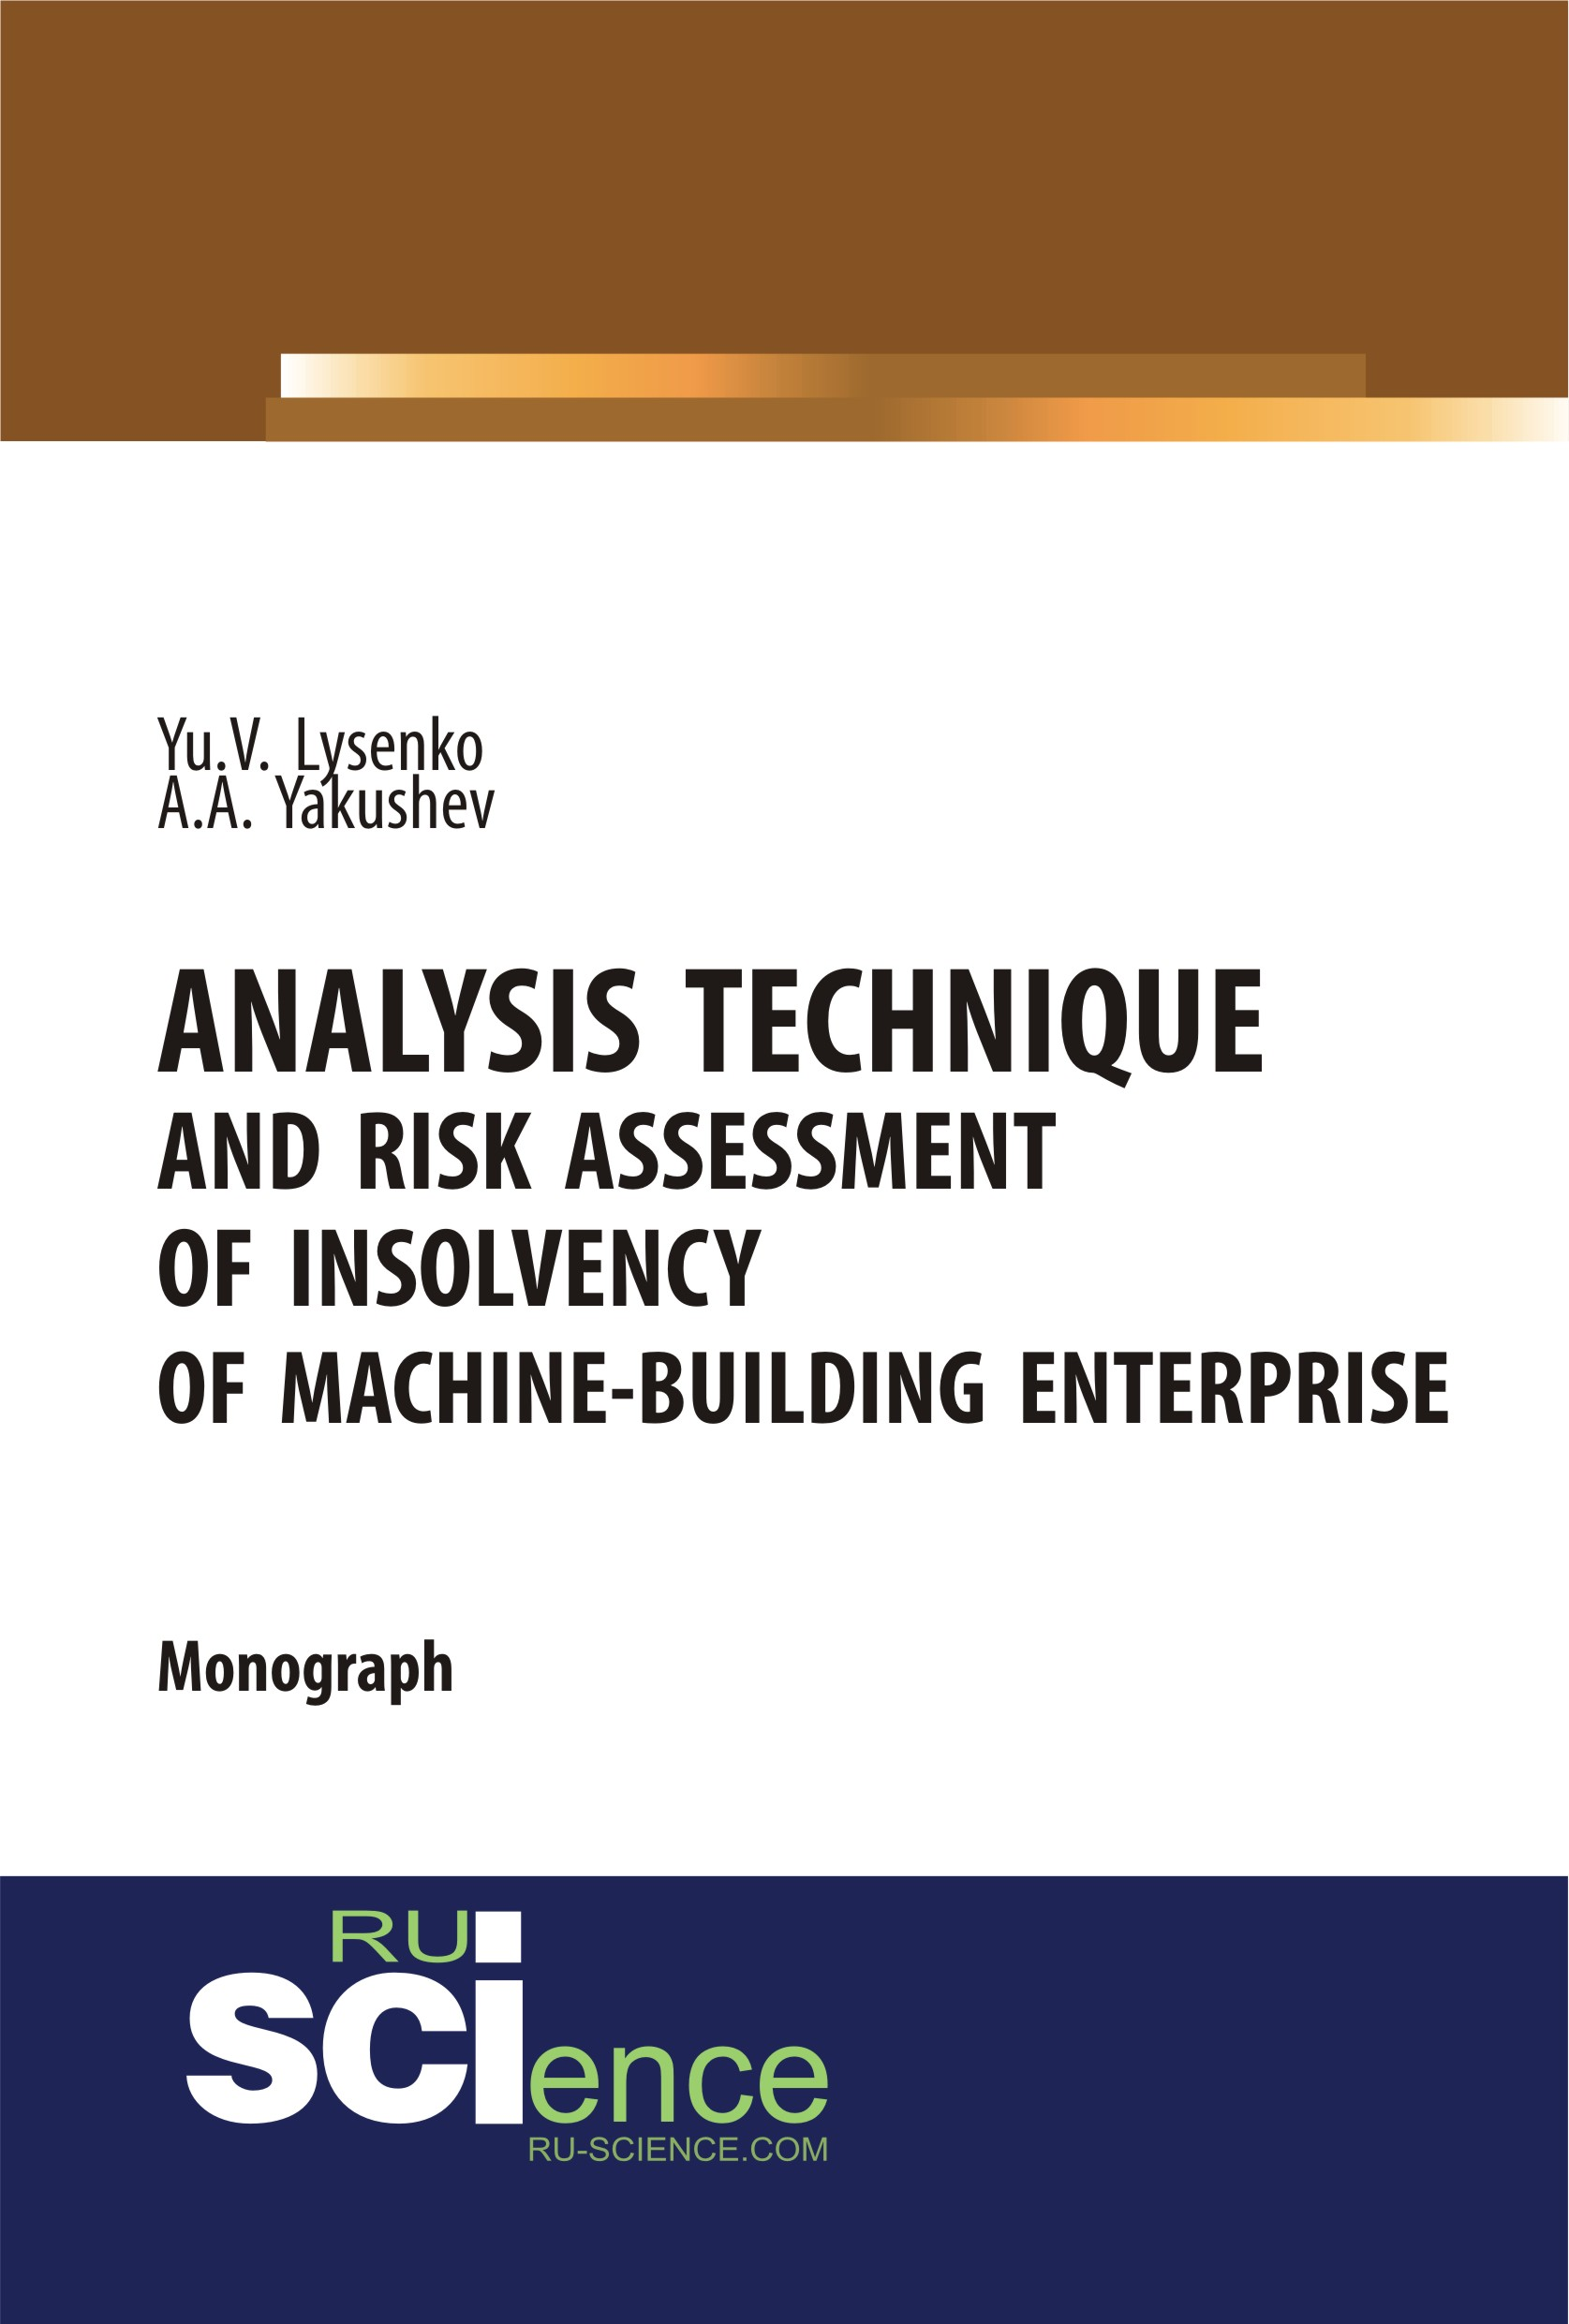 Фото - Ю. В. Лысенко Analysis technique and risk assessment of insolvency of machine-building enterprise food mixers bosch mum4856eu home kitchen appliances processor machine equipment for the production of making cooking